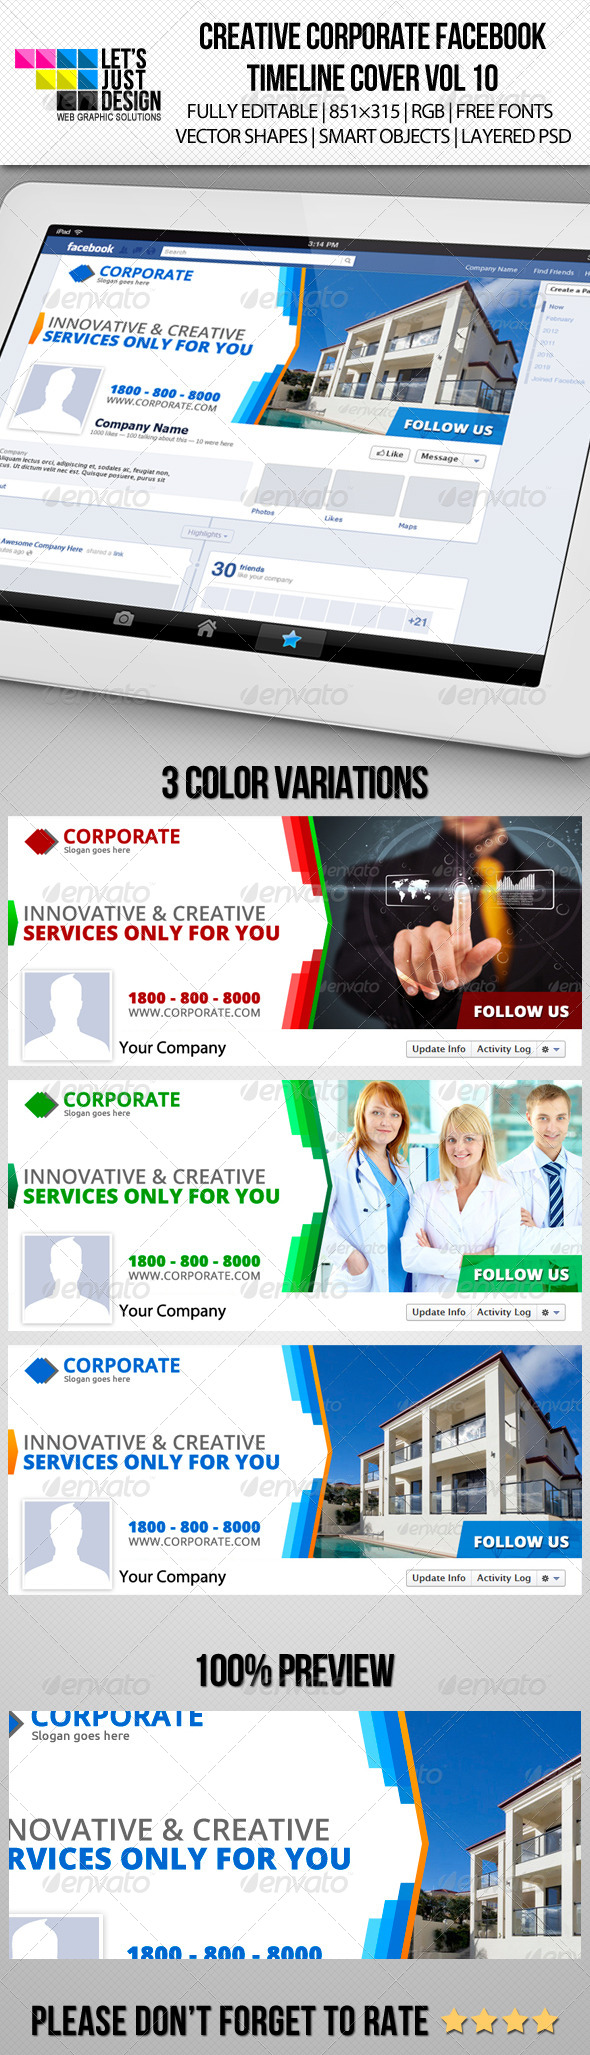 GraphicRiver Creative Corporate Facebook Timeline Cover Vol 10 6372809